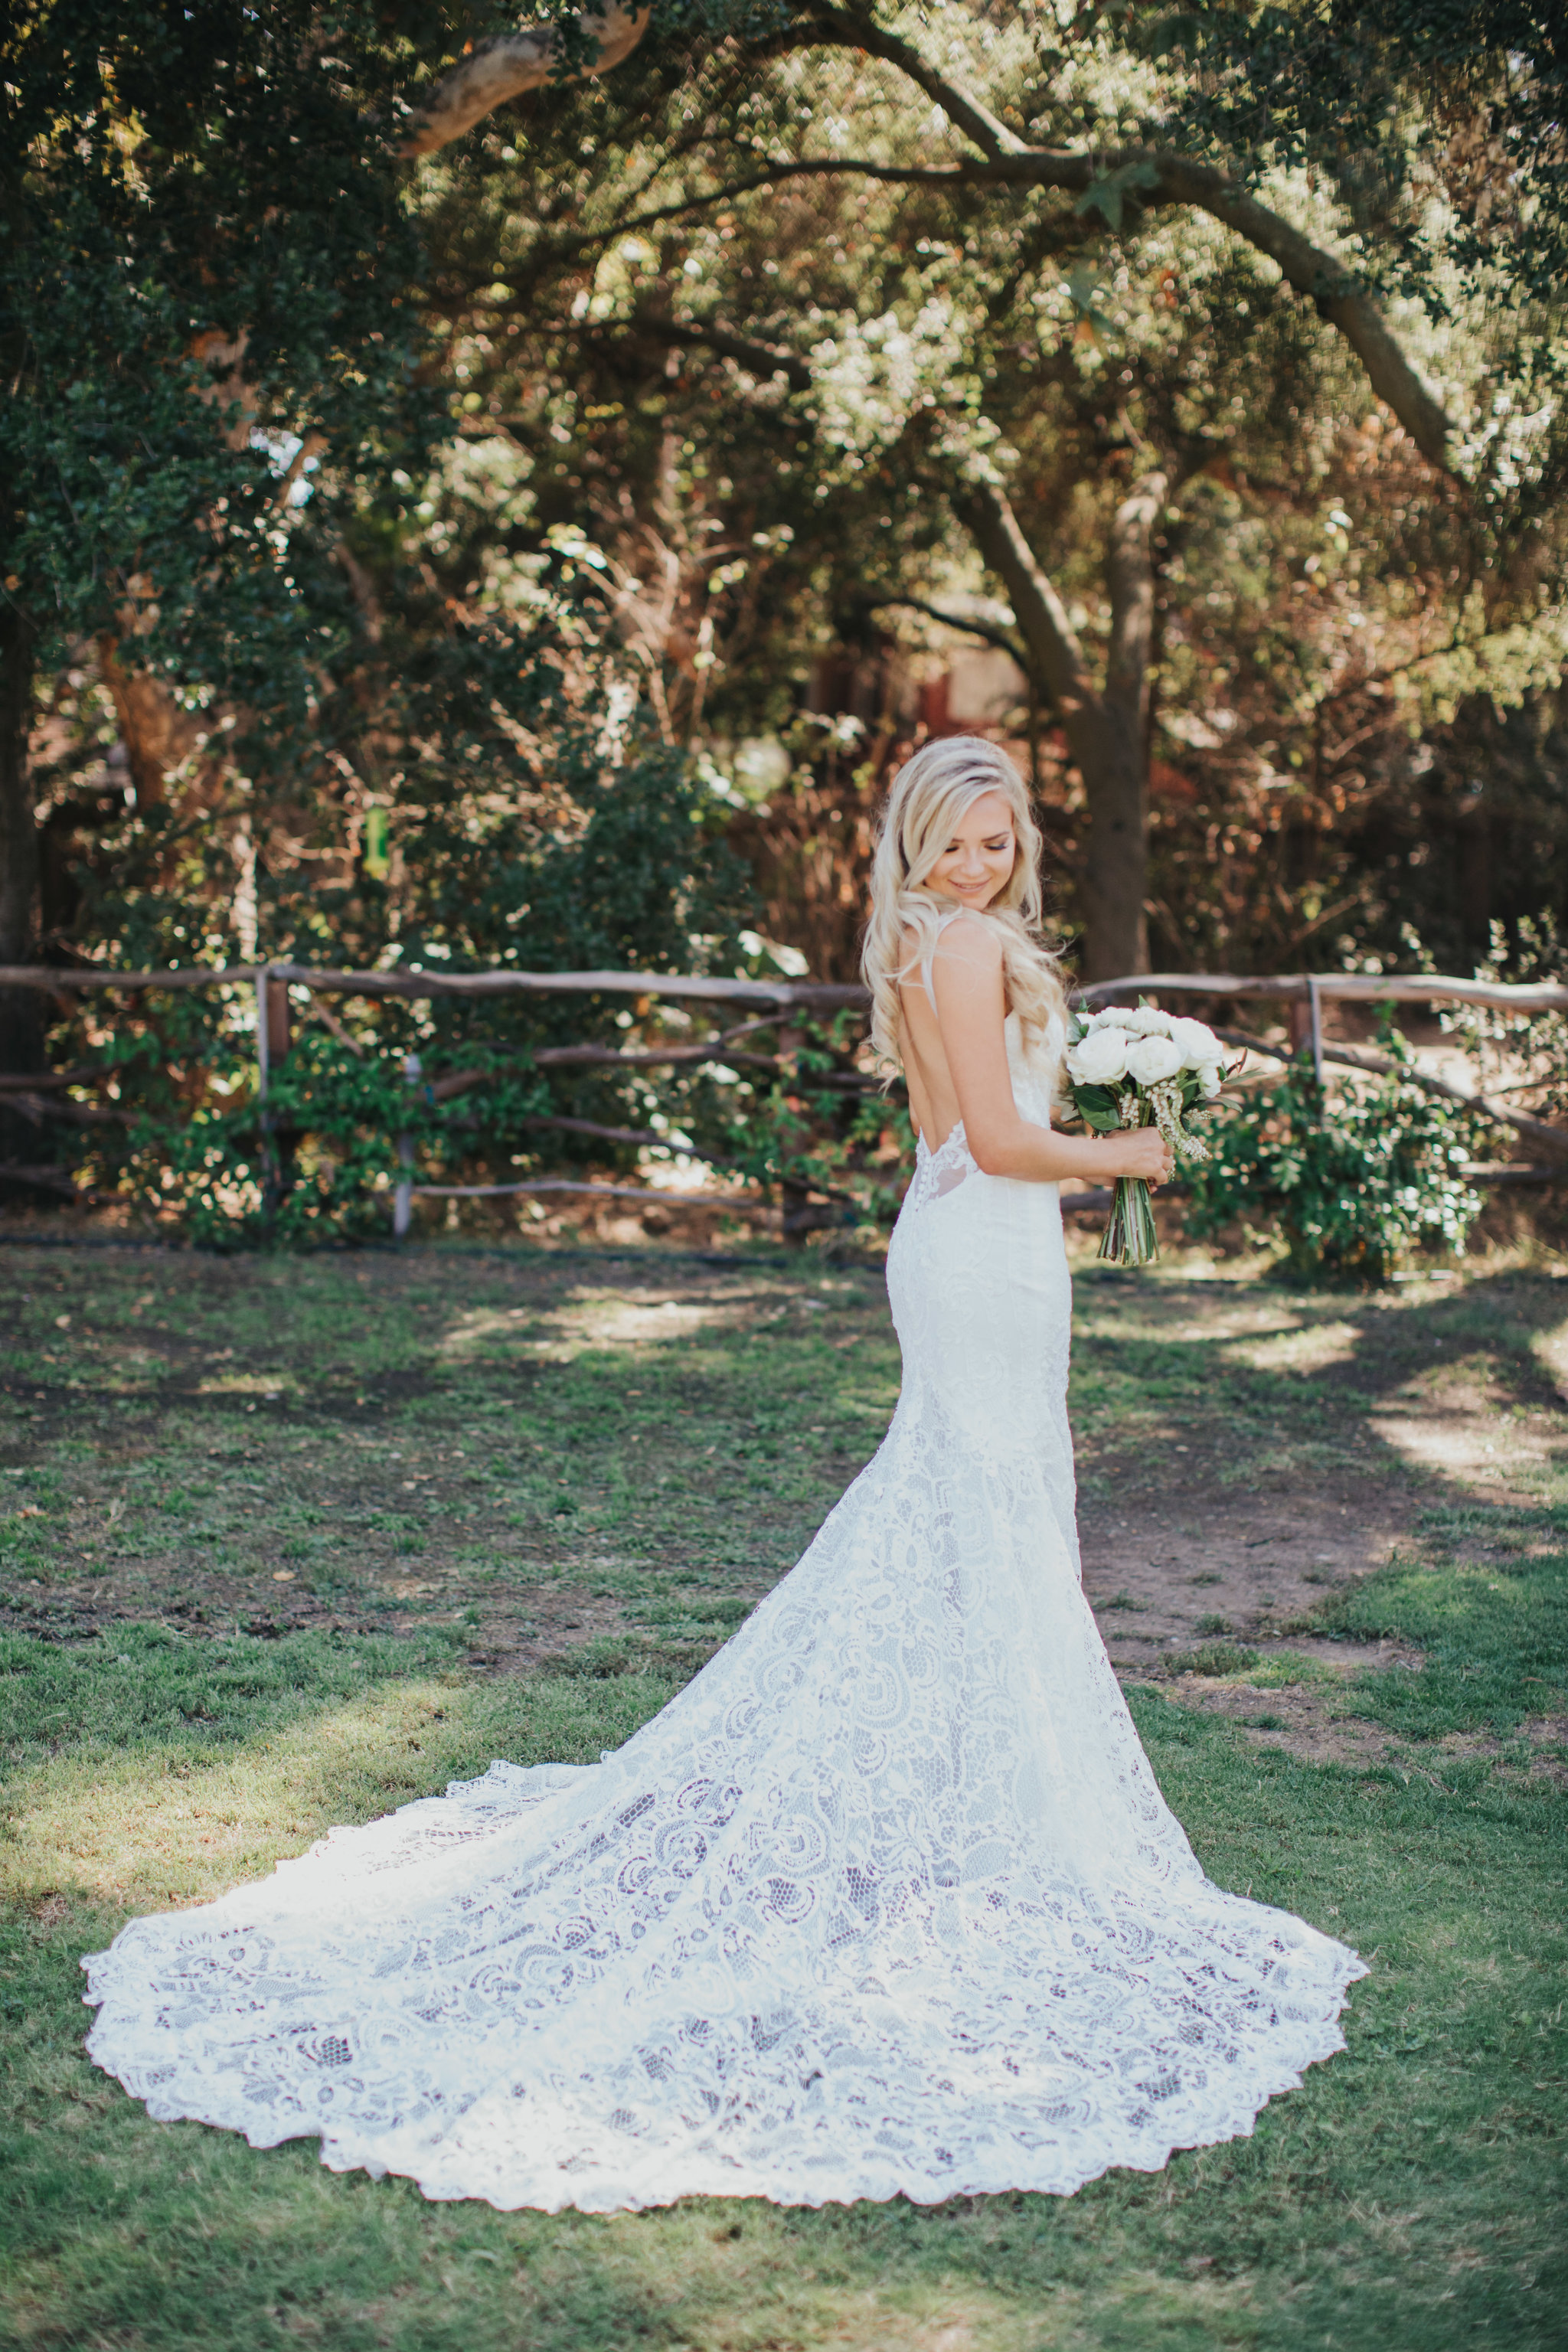 Wedding Dress | Calamigos Ranch